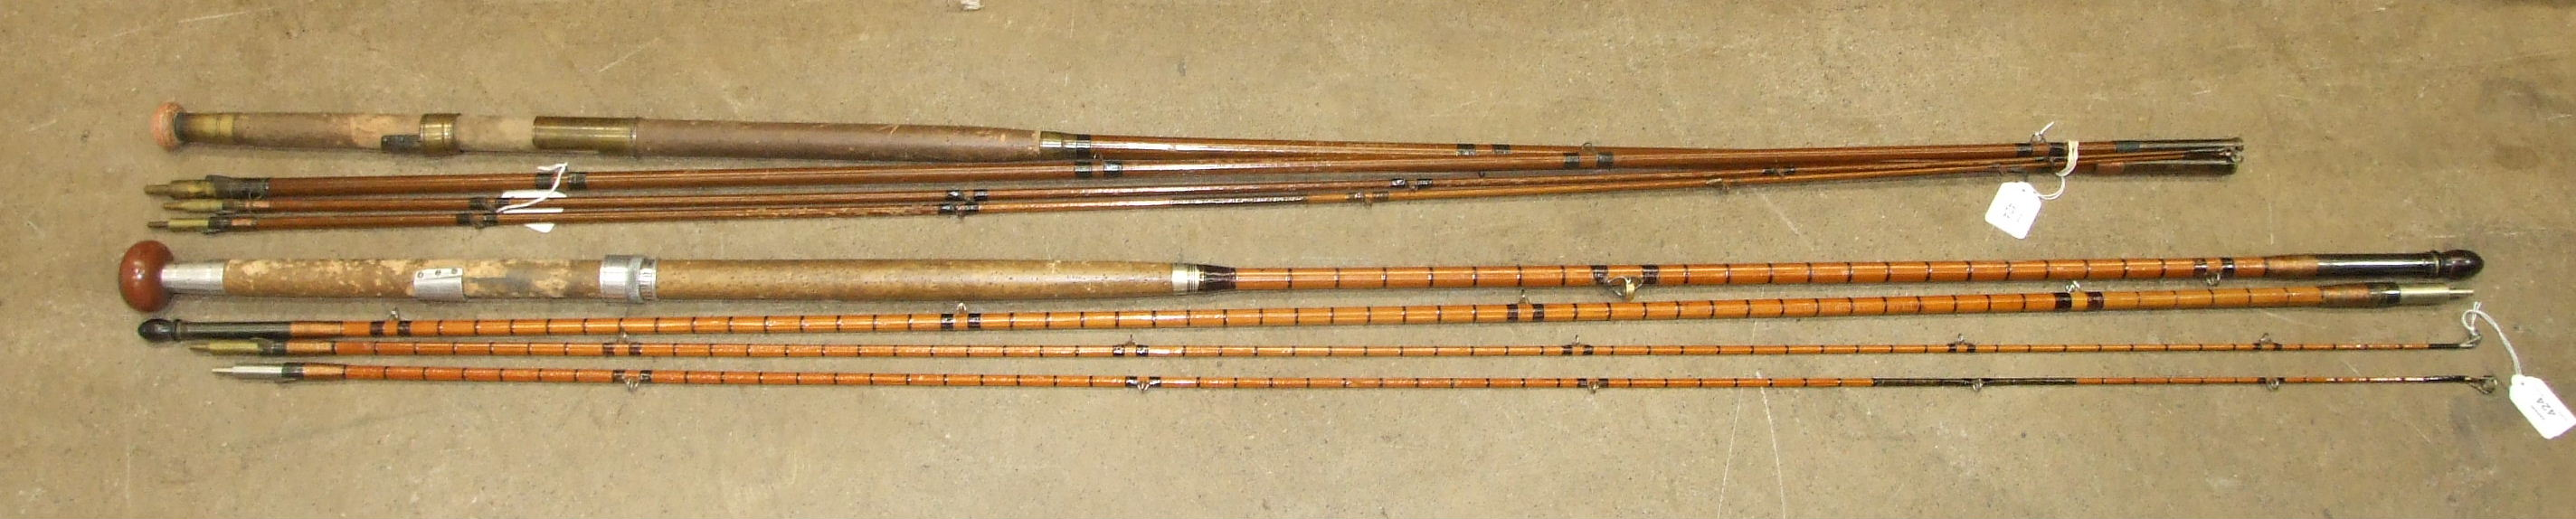 """Lot 424 - A Hardy's 16' steel-centred split-cane three-piece fly rod """"The Hi Regan"""", with spare tip, (1"""